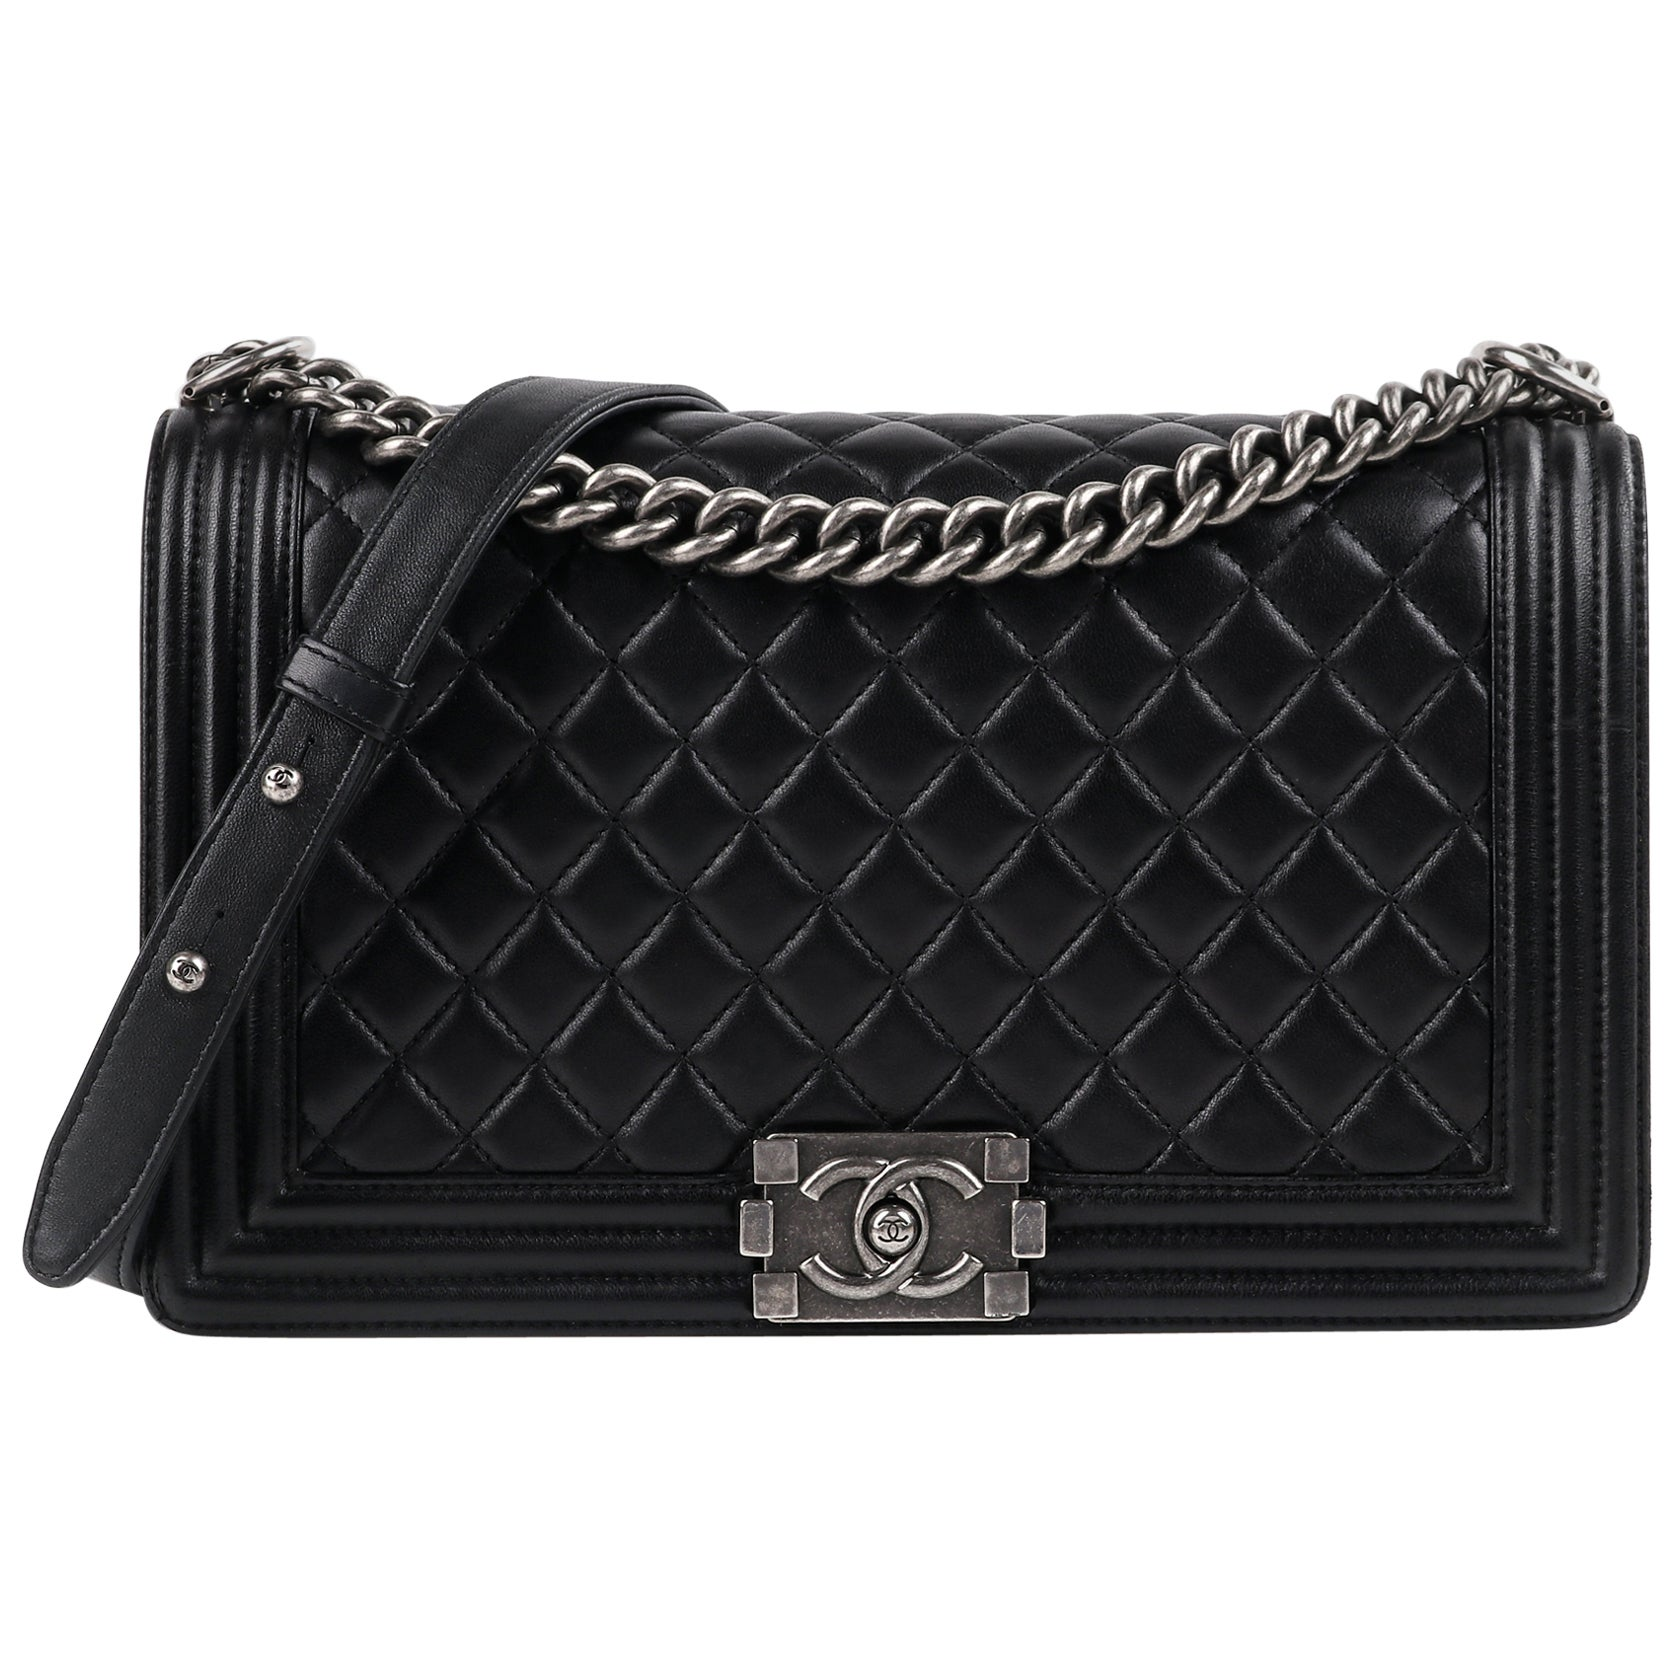 "CHANEL c.2018 ""Boy"" Large Black Quilted Leather Flap Chain Strap Shoulder Bag"